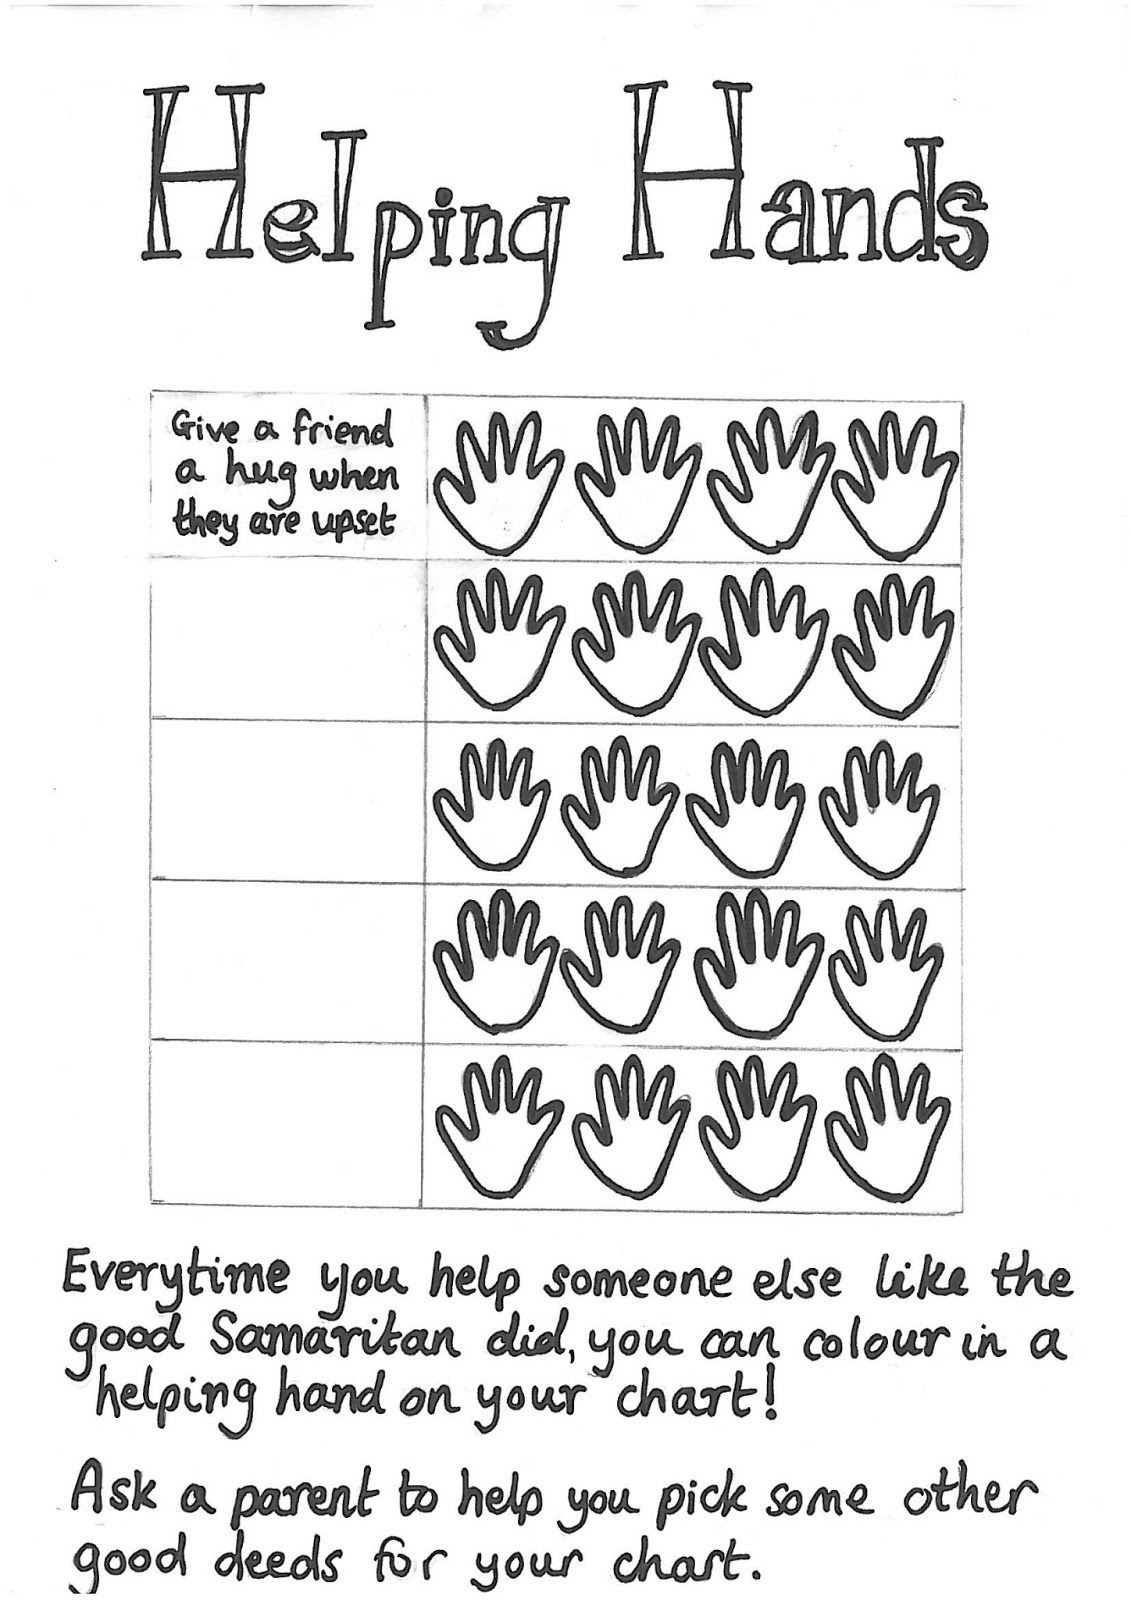 helping hands coloring page - flame creative children 39 s ministry good samaritan